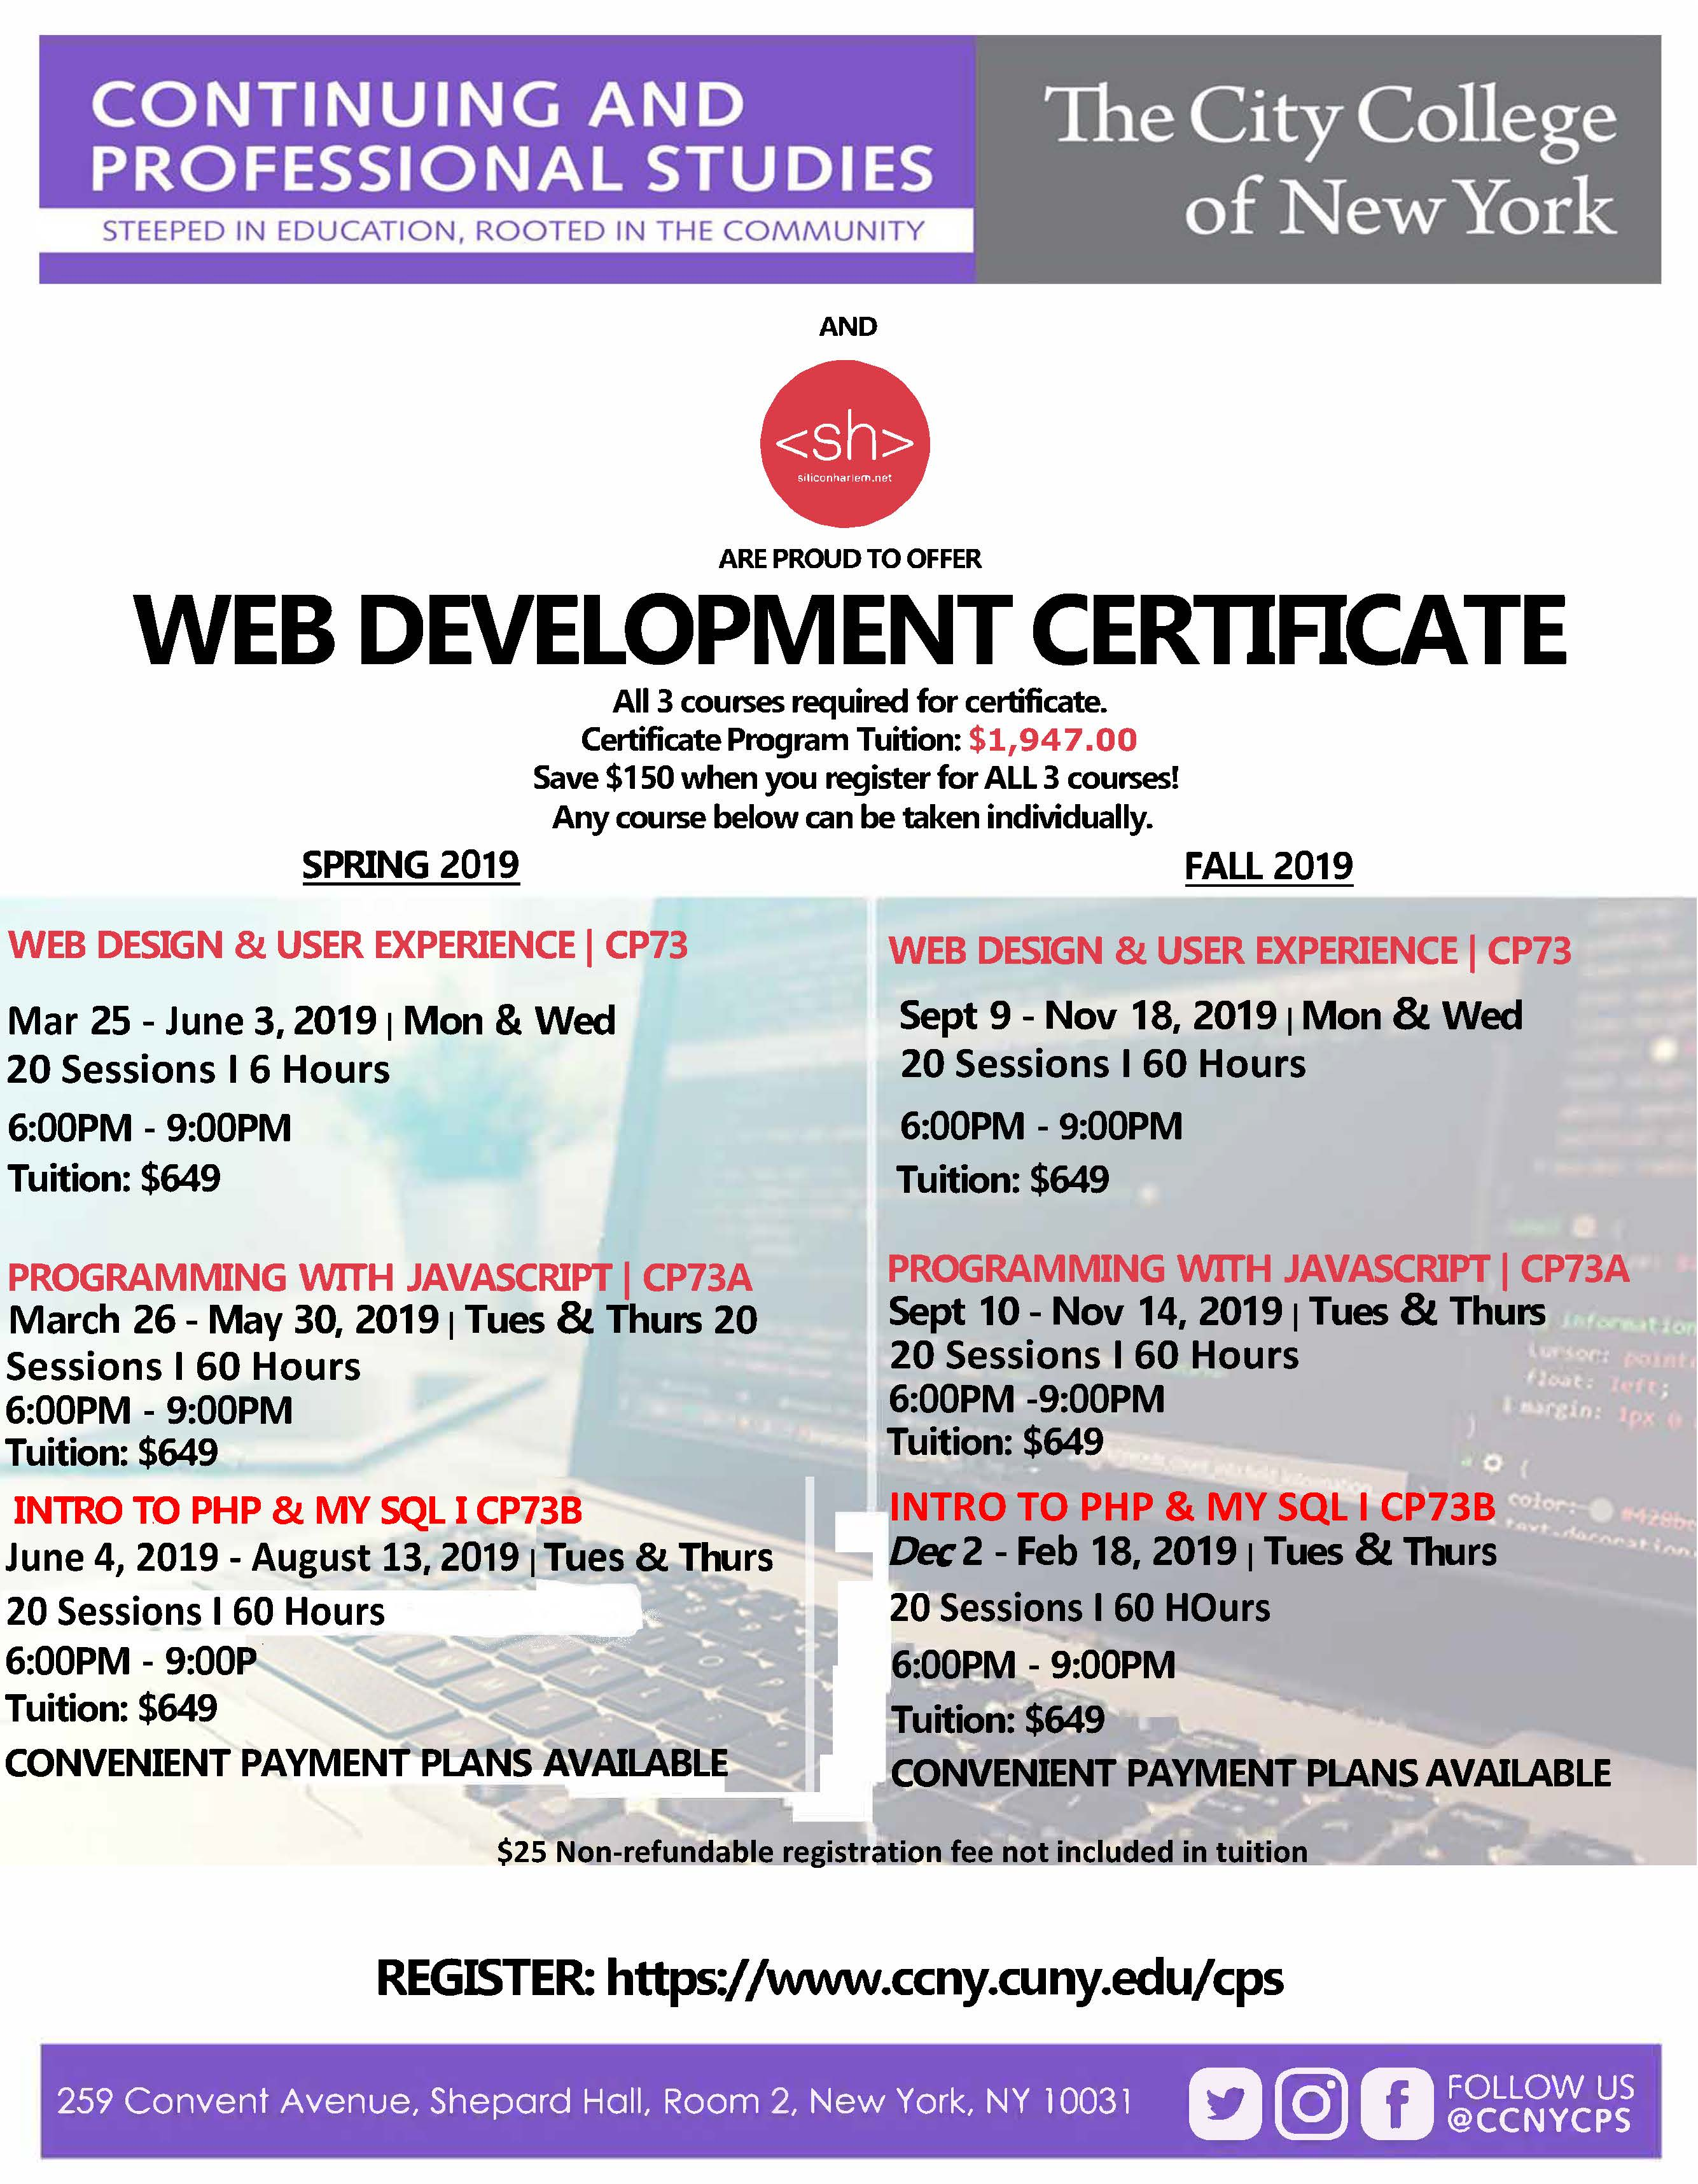 Web Development Certificate Program The City College Of New York